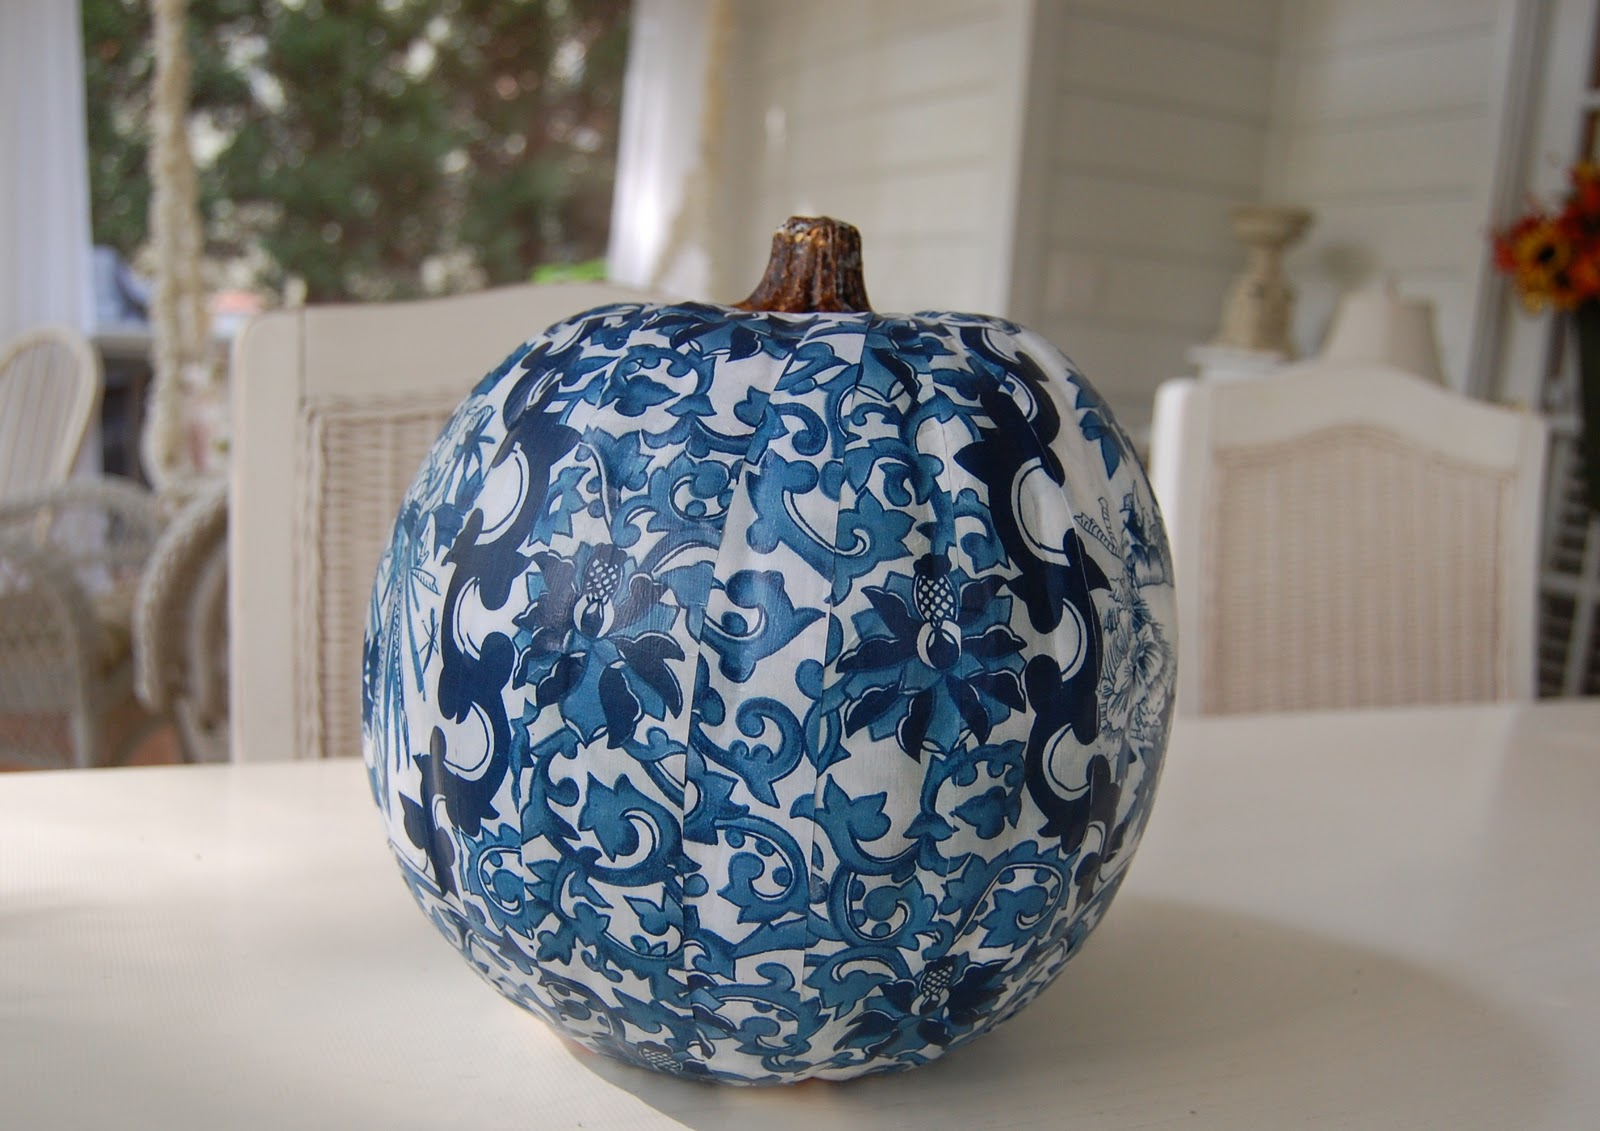 Decoupage A Pumpkin To Coordinate With A Room S Design Or